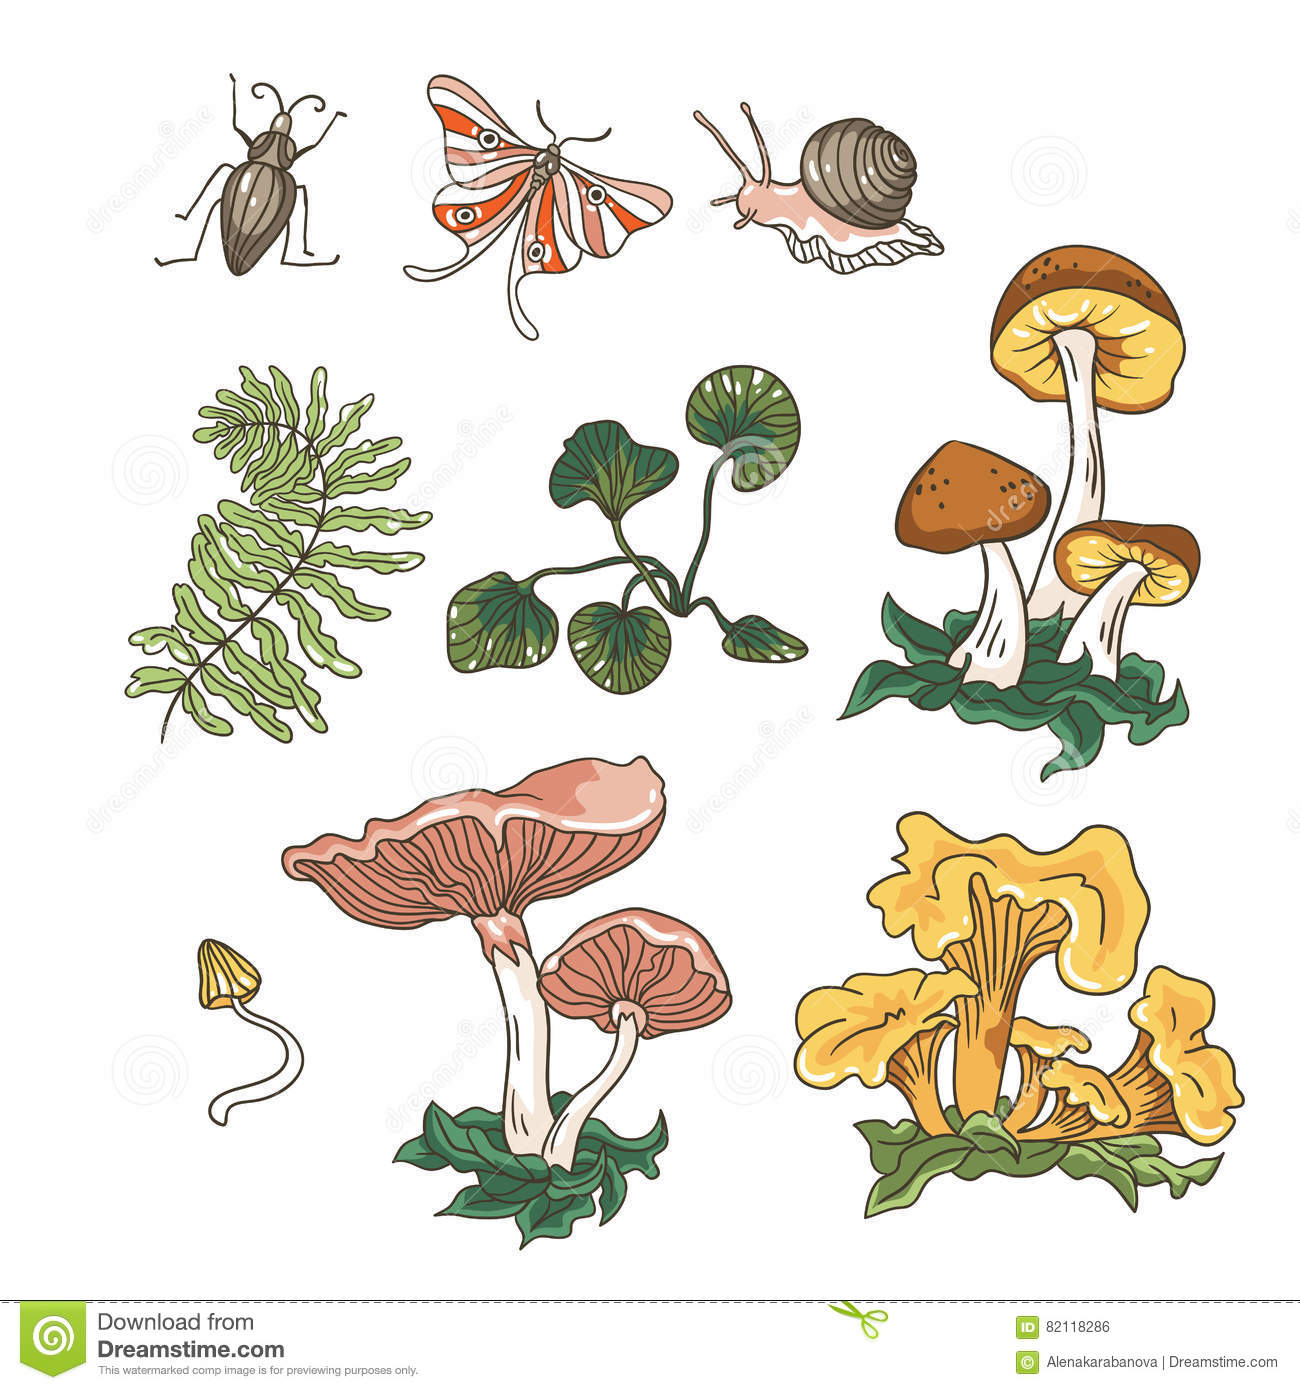 Vector autumn set of mushrooms, fern, plants and insects.